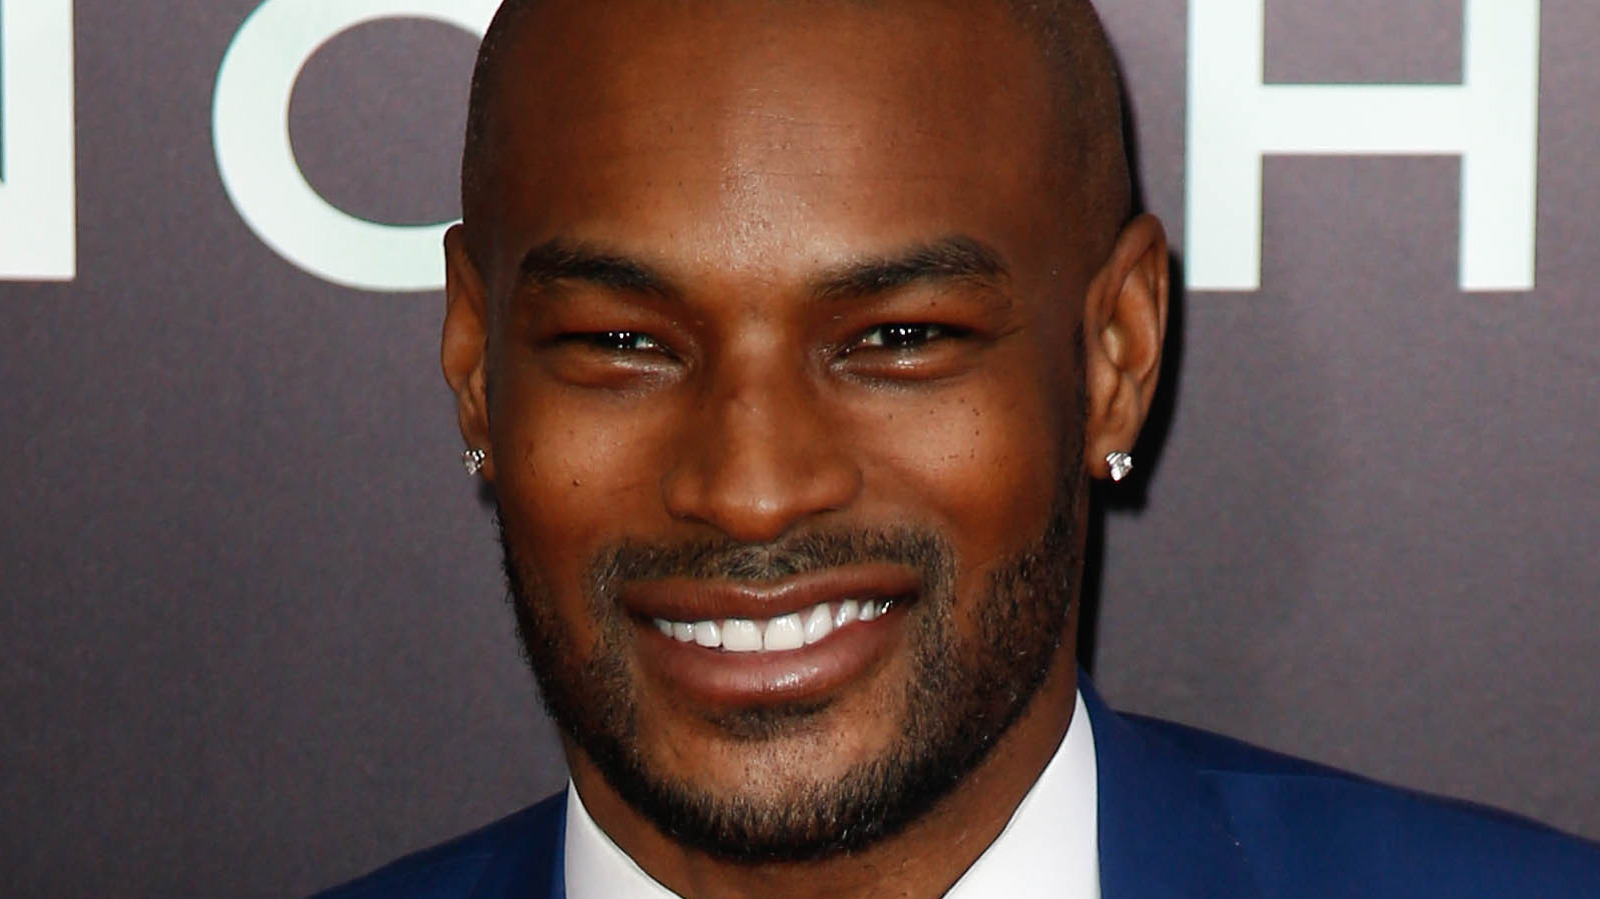 A Look At Tyson Beckford's Relationship Historical past